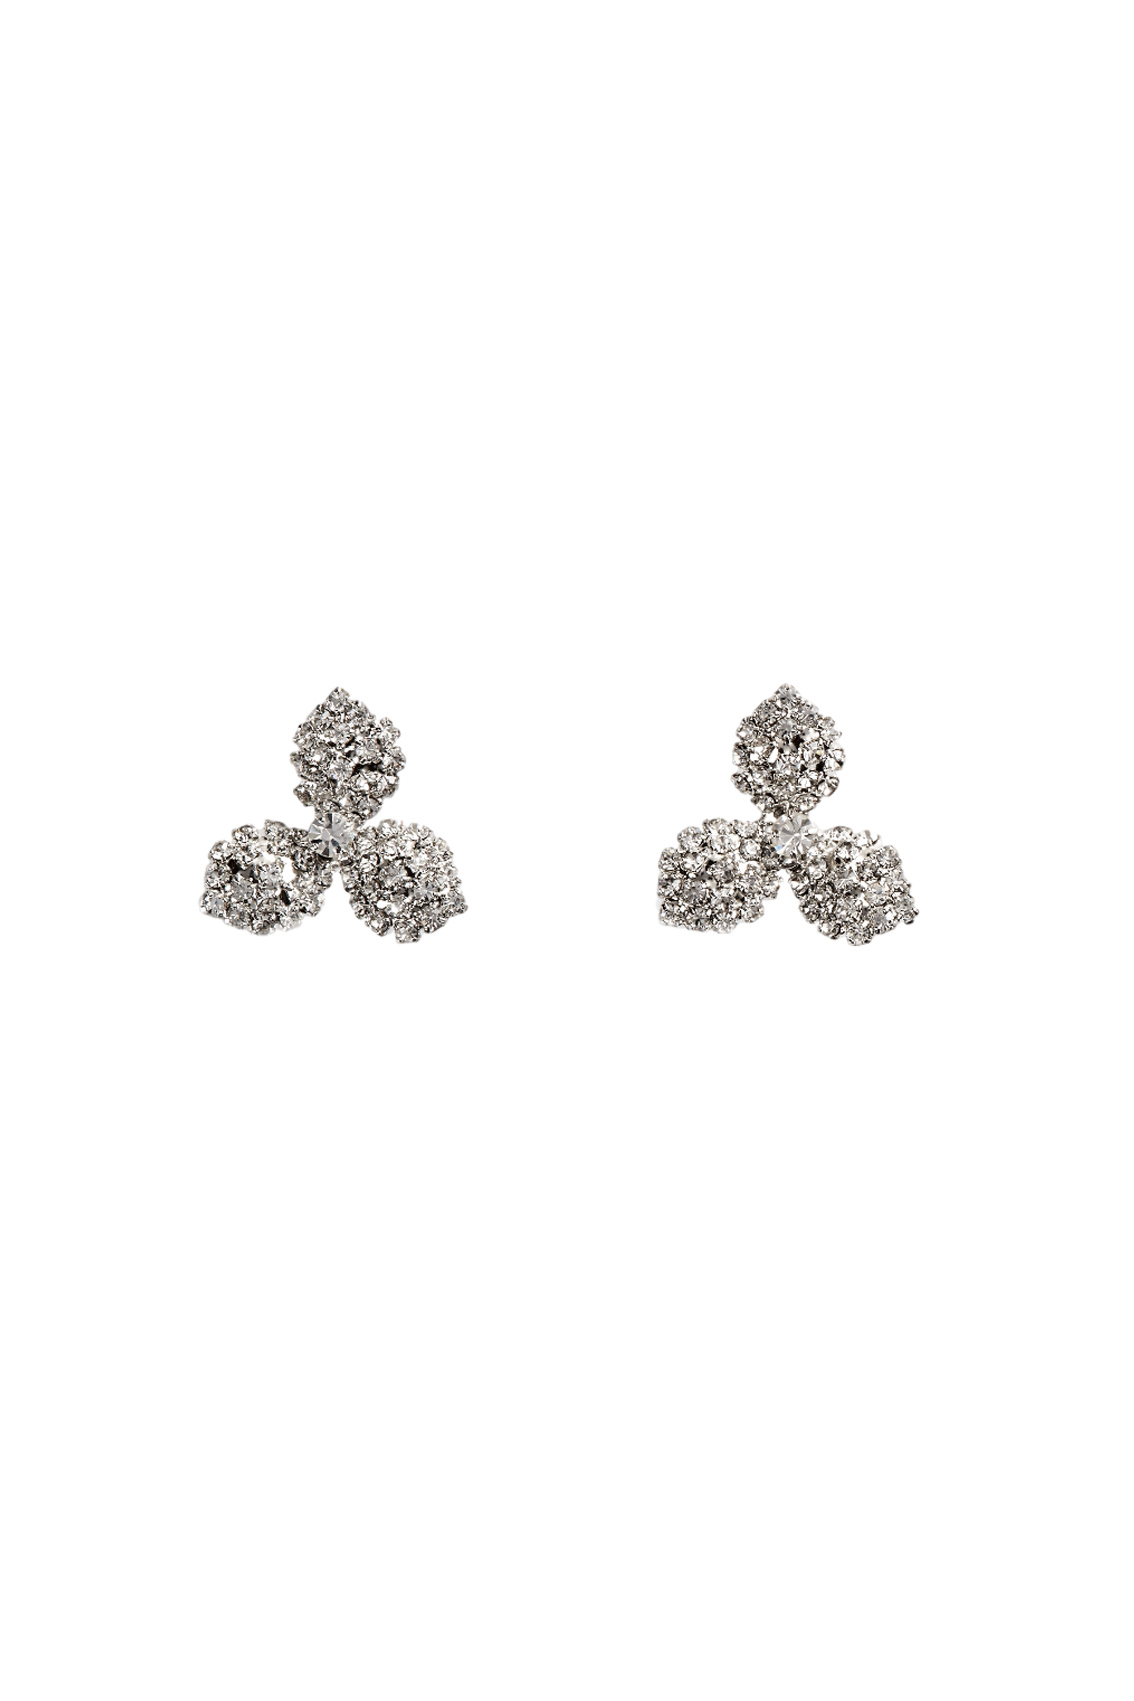 [RENTAL][Celeste Stud Earrings Crystal]by JENNIFER BEHR